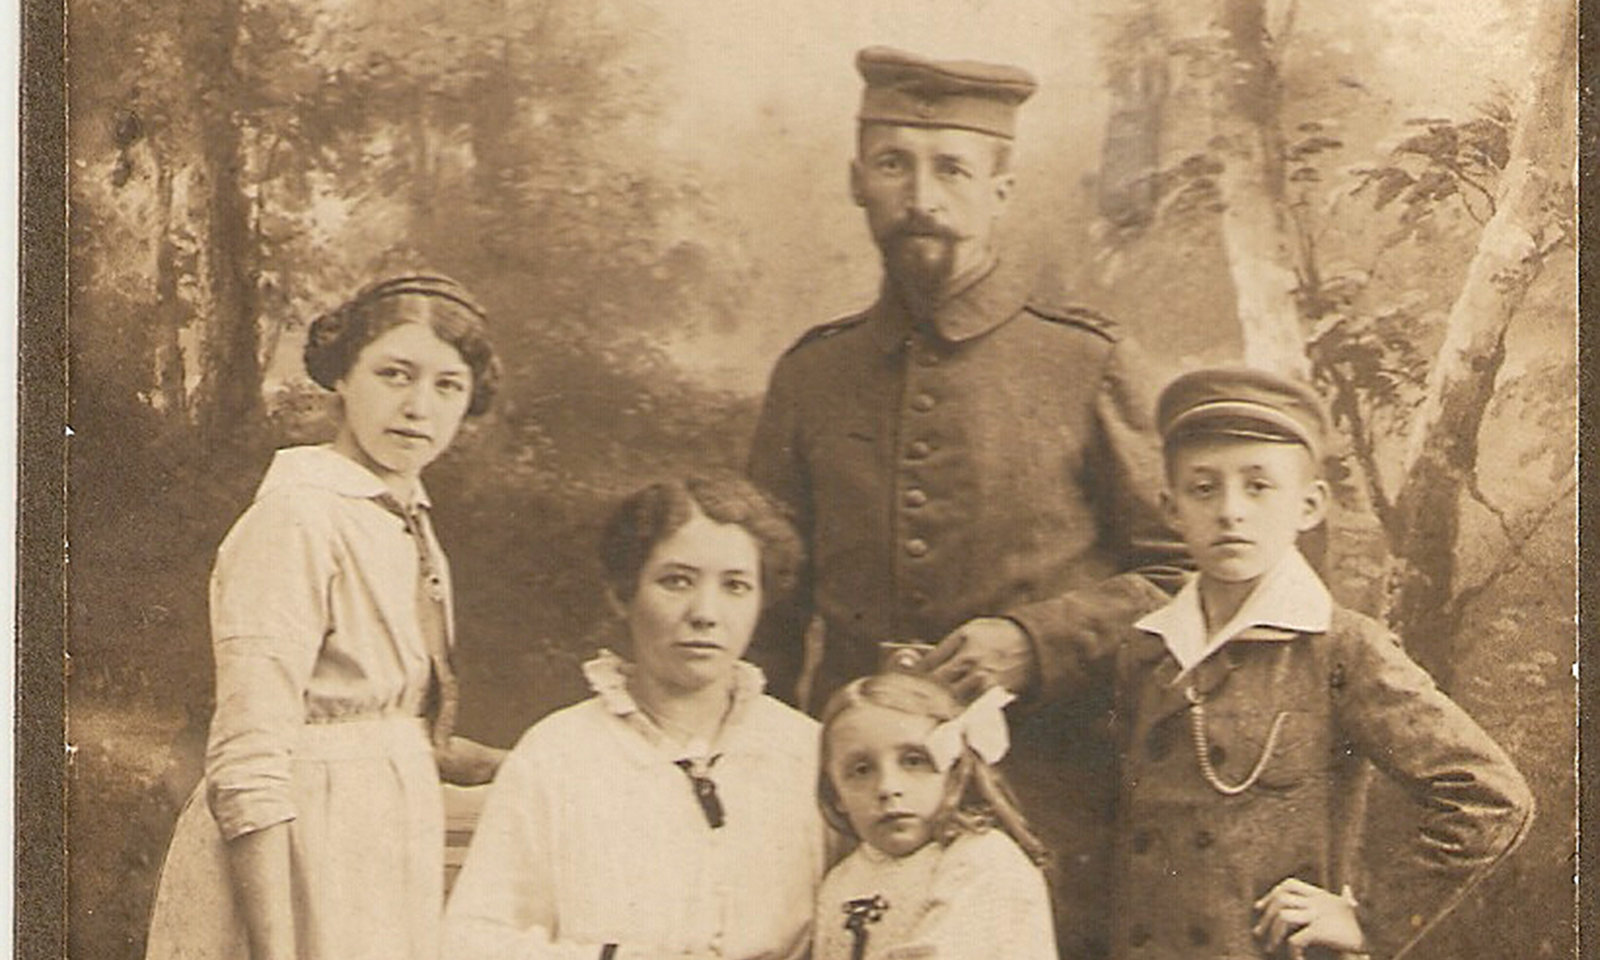 Soldier at home for vacation, Family photo of soldier John Frederick Mack. On the right the contributor's father Willy Mack, Europeana 1914-1918 / Thomas Mack, CC BY-SA